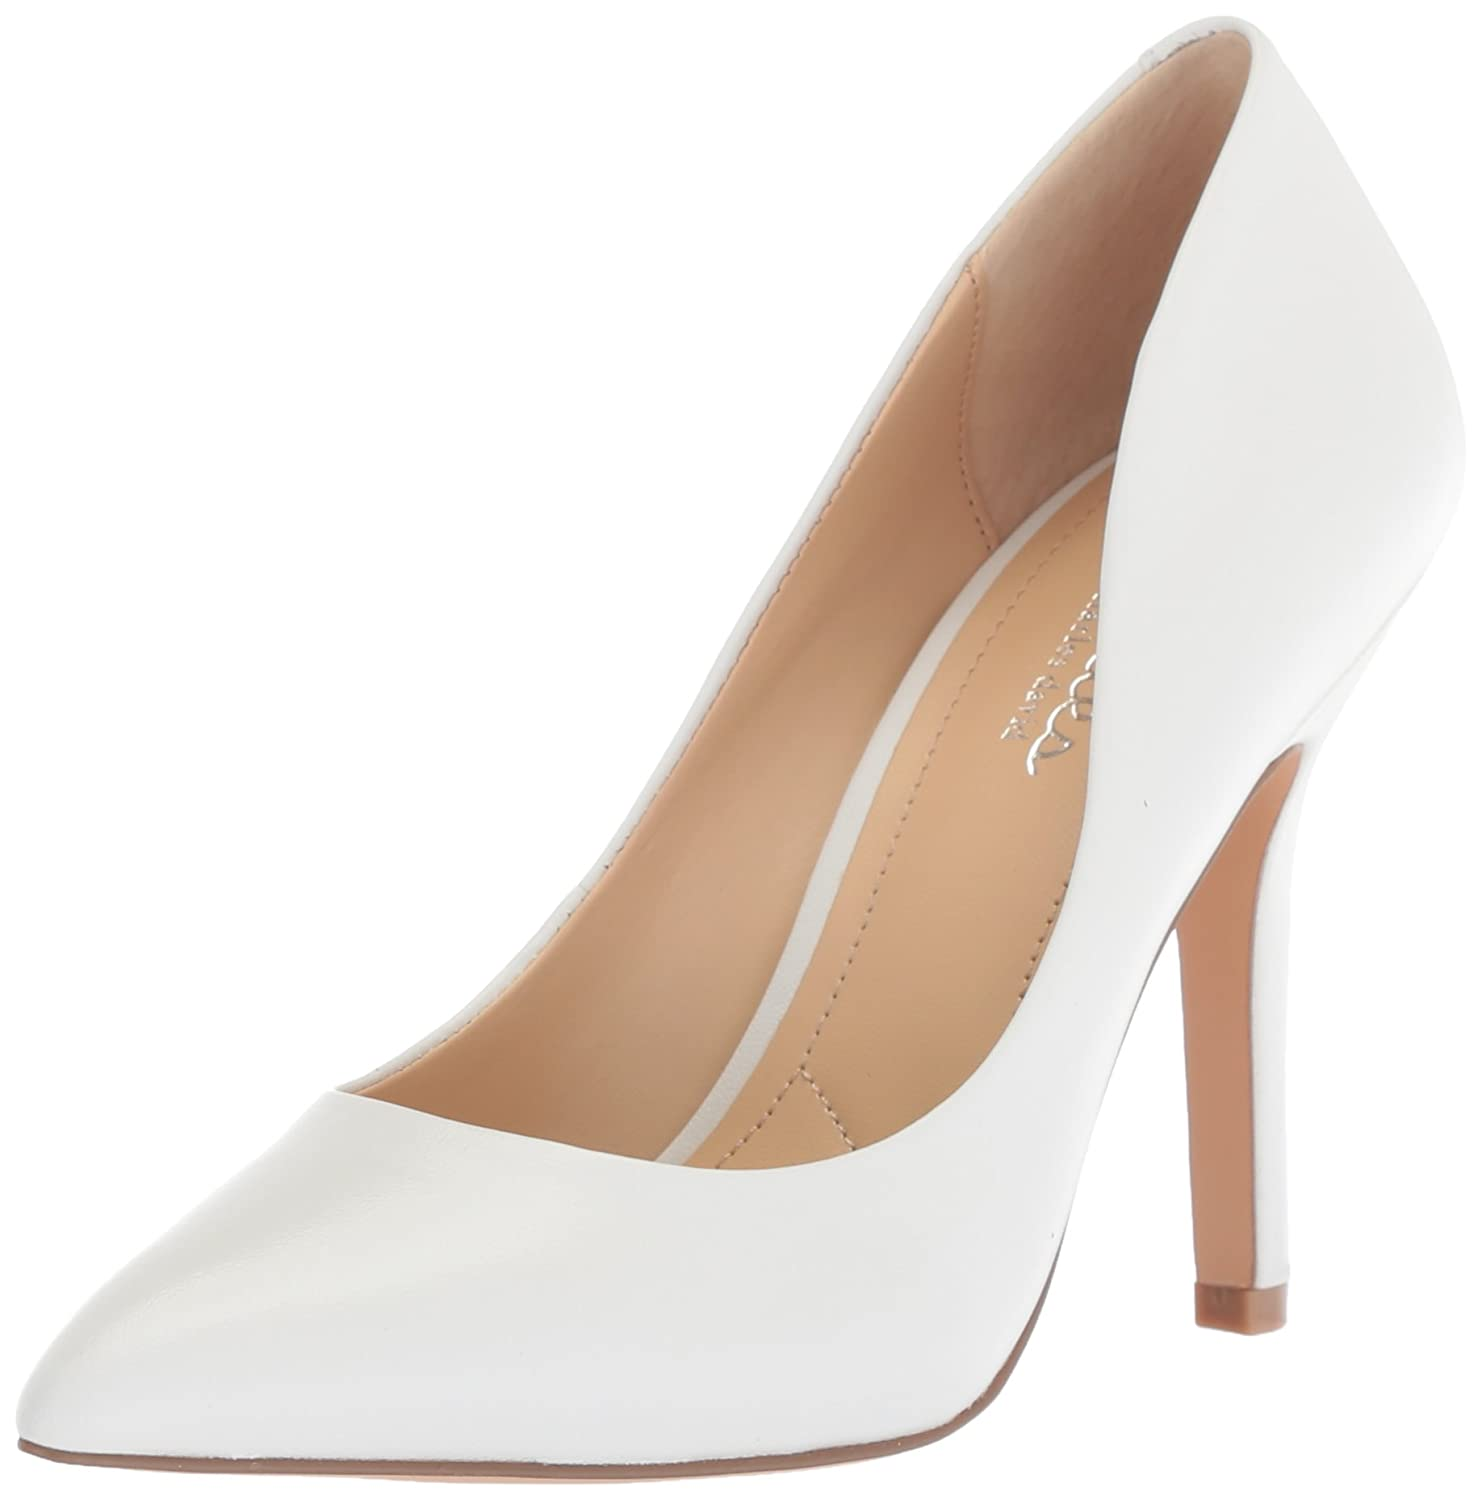 Charles by Charles David Women's Maxx Pump B075NQNVV8 7.5 B(M) US|White